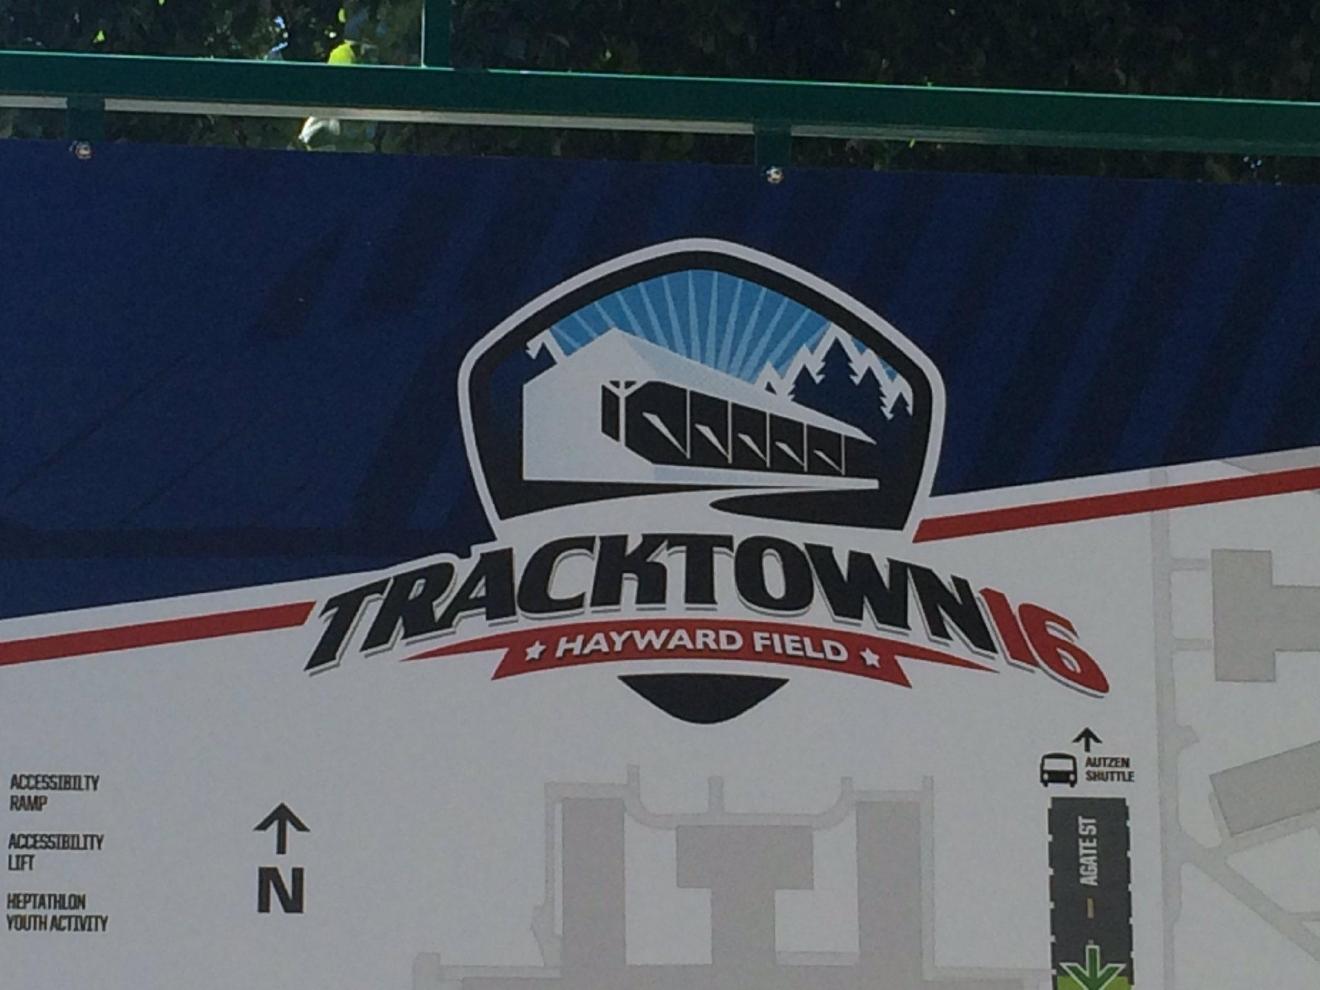 Merchants and staff set up the TrackTown16 Fan Festival in Eugene on Thursday, June 30, 2016. The free festival opens to the public at 1 p.m. July 1, 2016. (SBG photo)